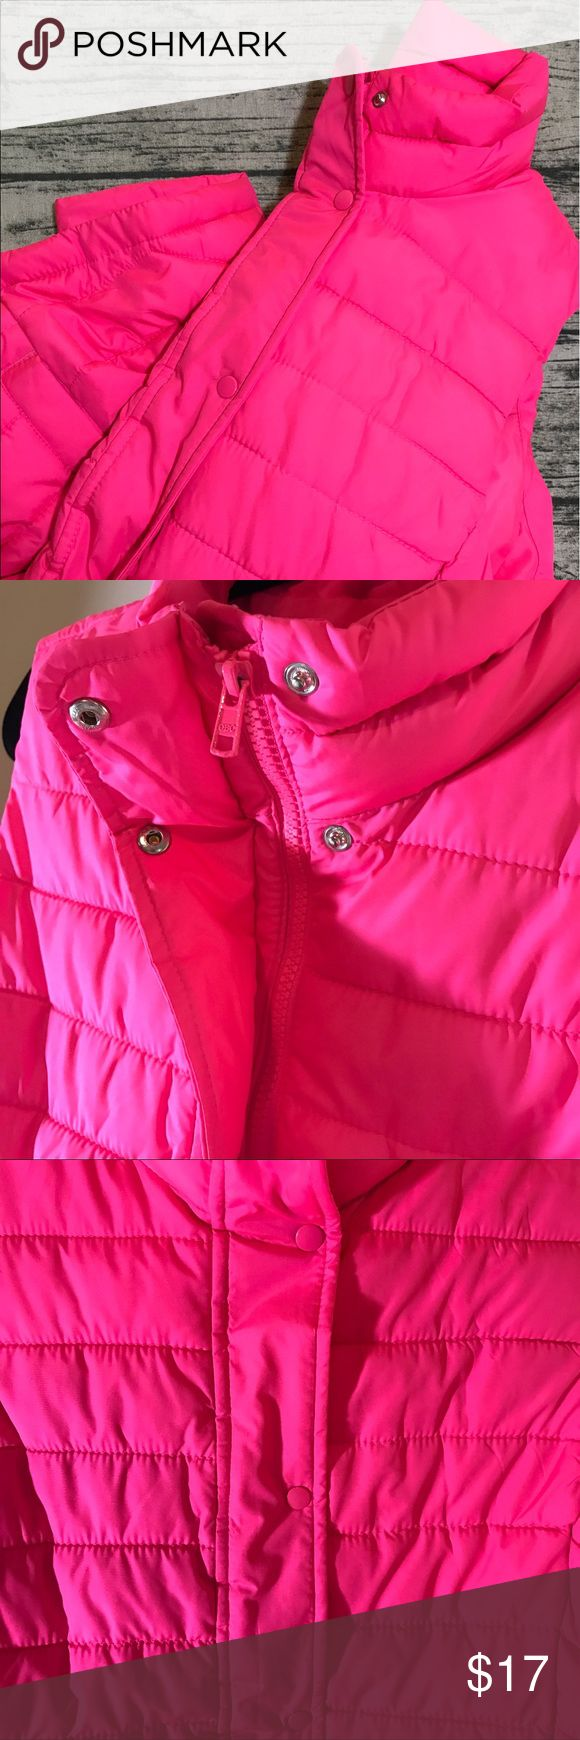 GAP Hot Pink Vest GAP Hot Pink Vest. Worn once, everything in good condition. Both zips and buttons, has pockets. GAP Jackets & Coats Vests